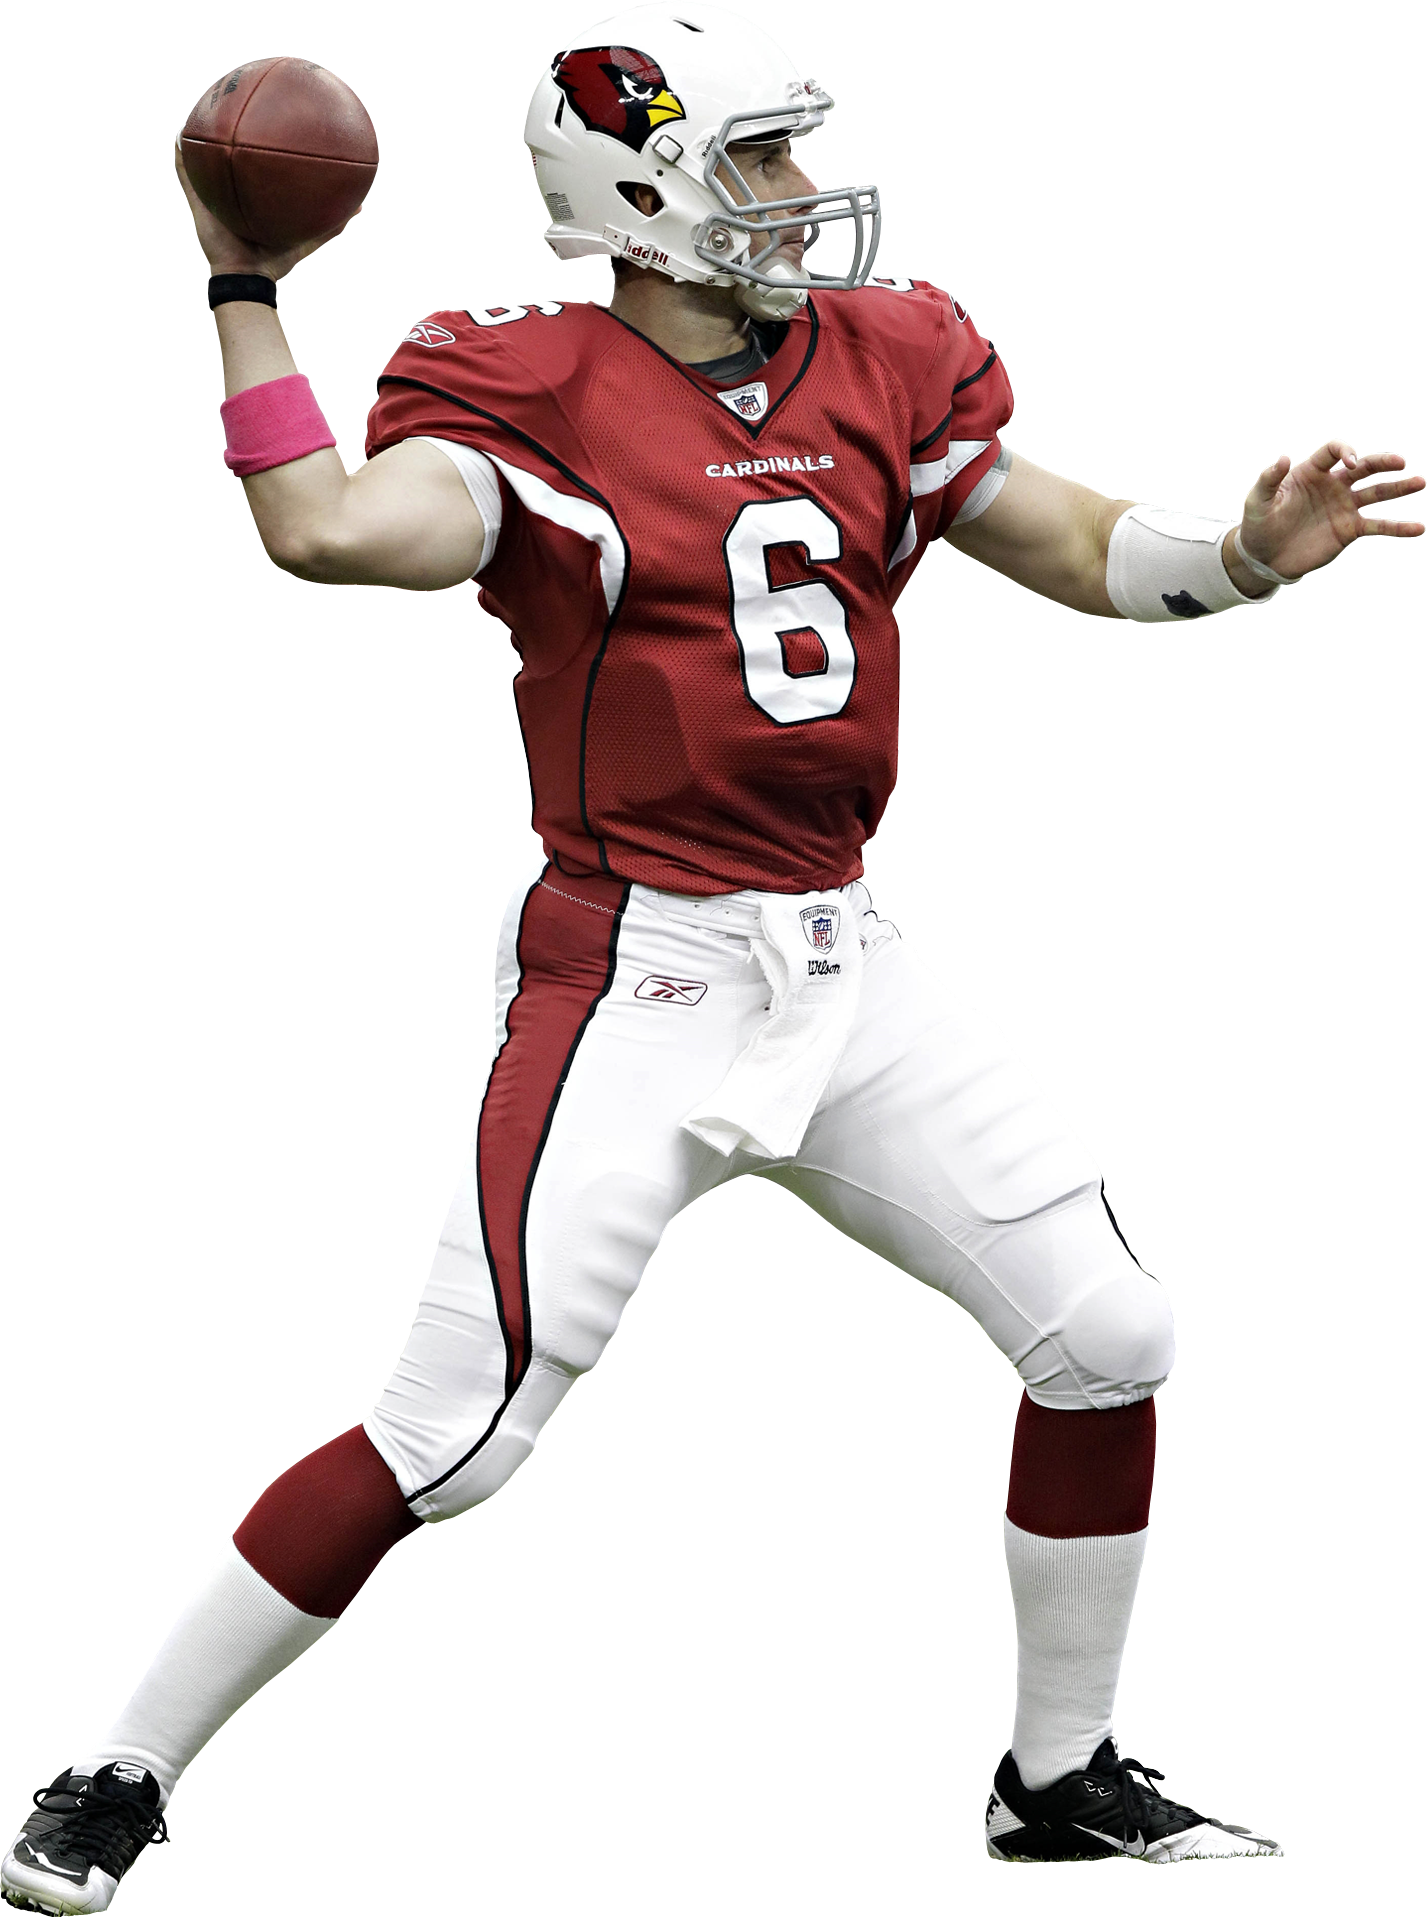 American Football Player Throwing A Ball Png Image American Football American Football Players Football Players